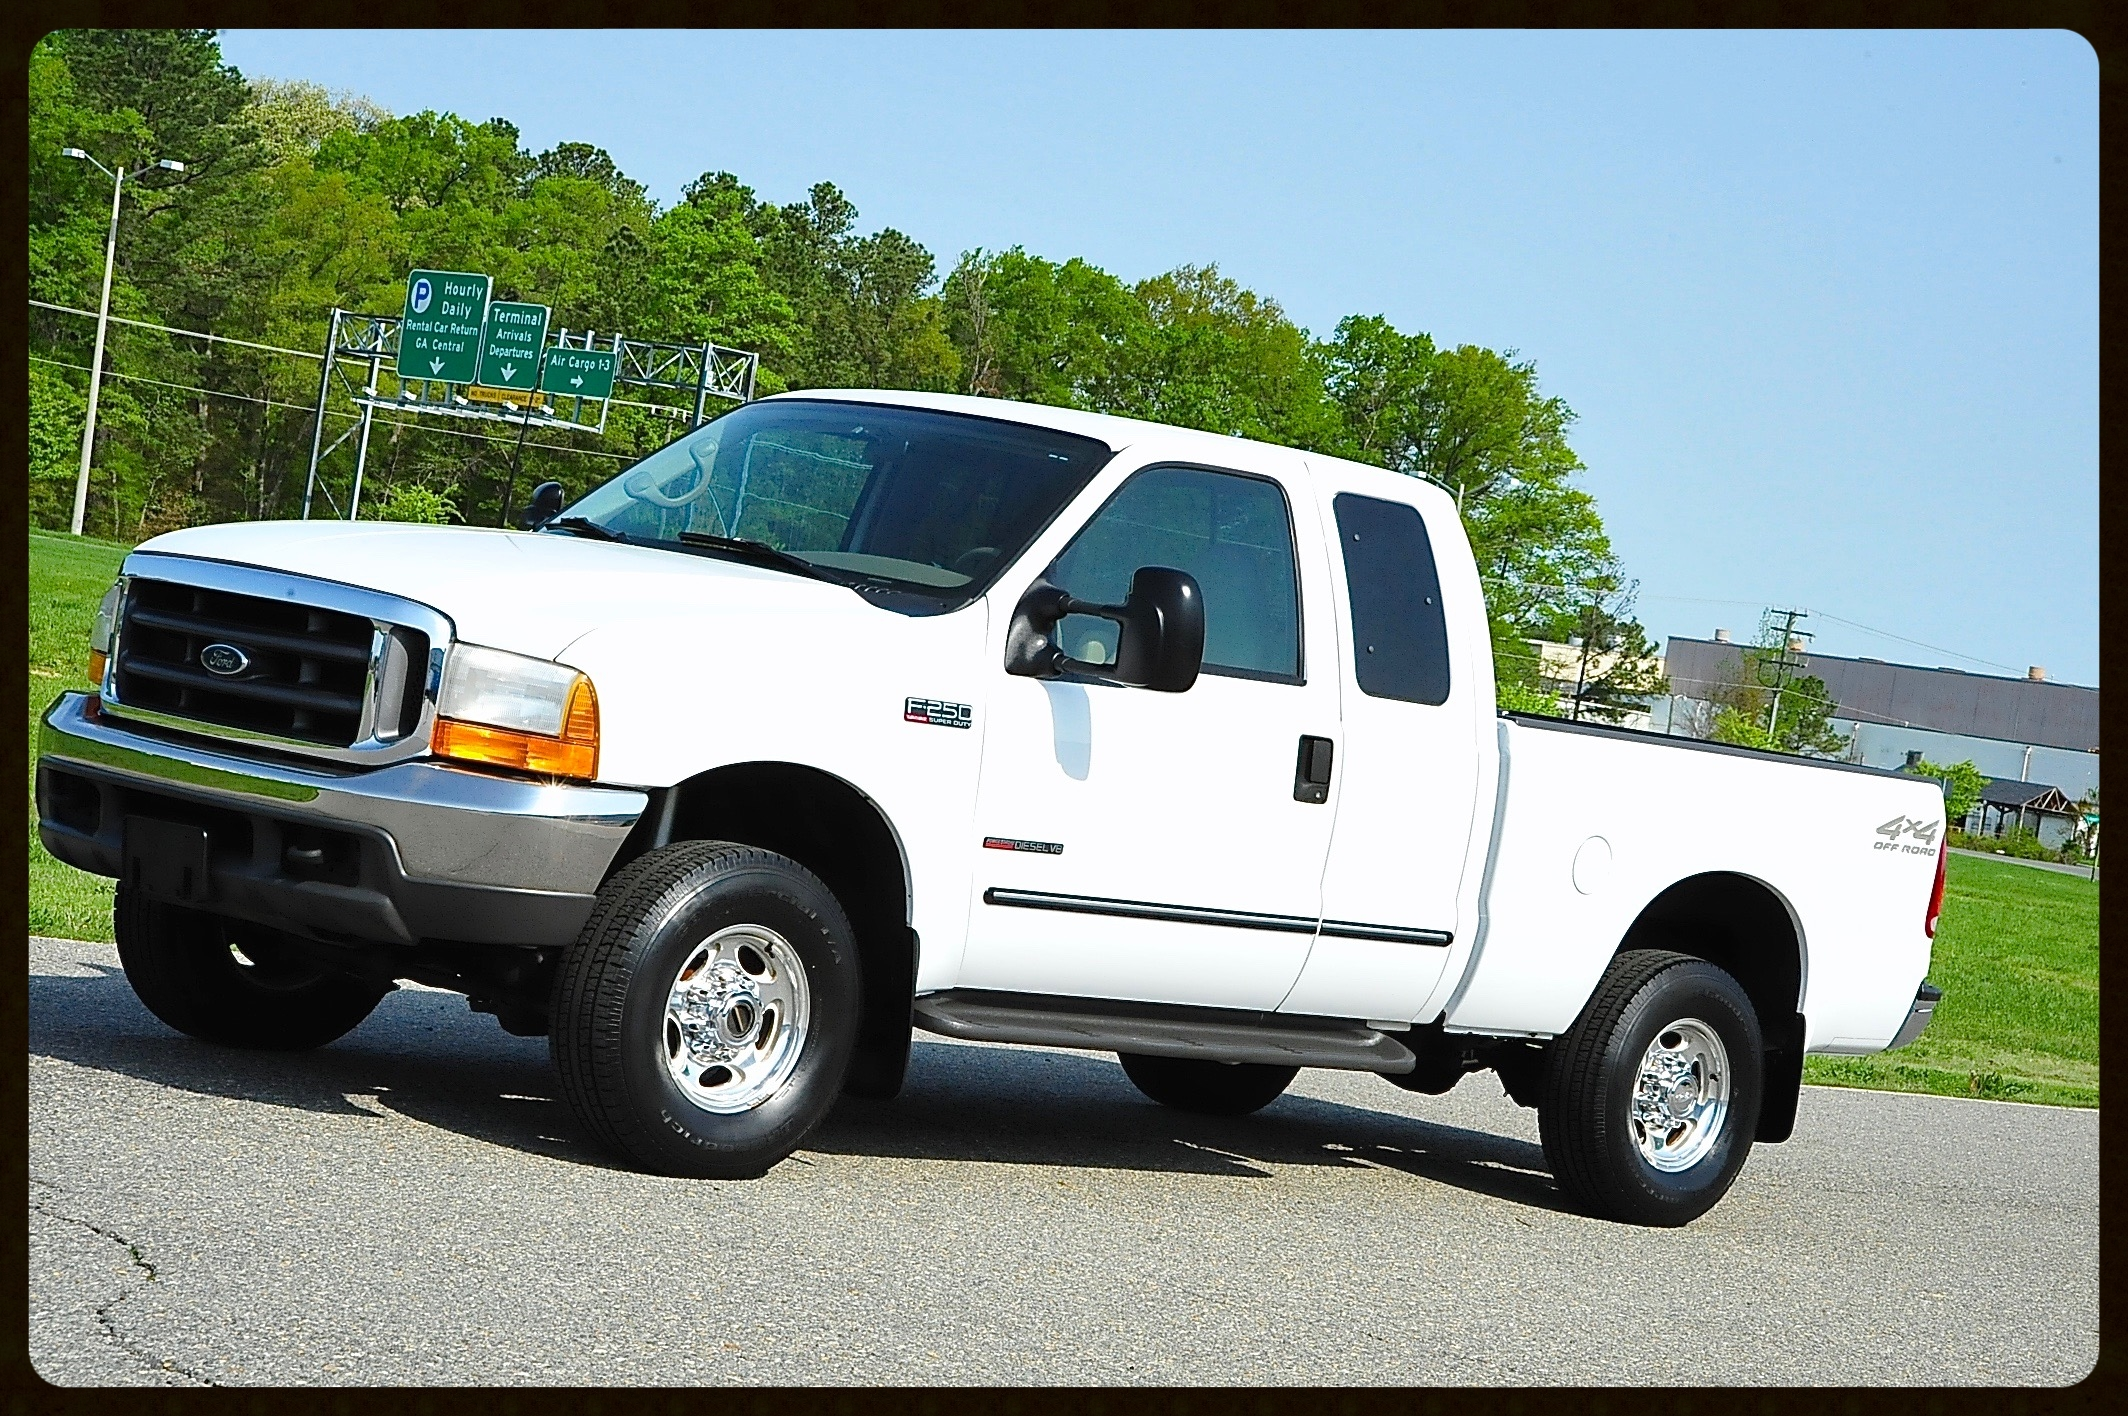 2001 Ford F250 7.3 Diesel with only 58K Original Miles...This Truck is a true 1 Owner and shows like new...Gorgeous Tan Leather Interior and More